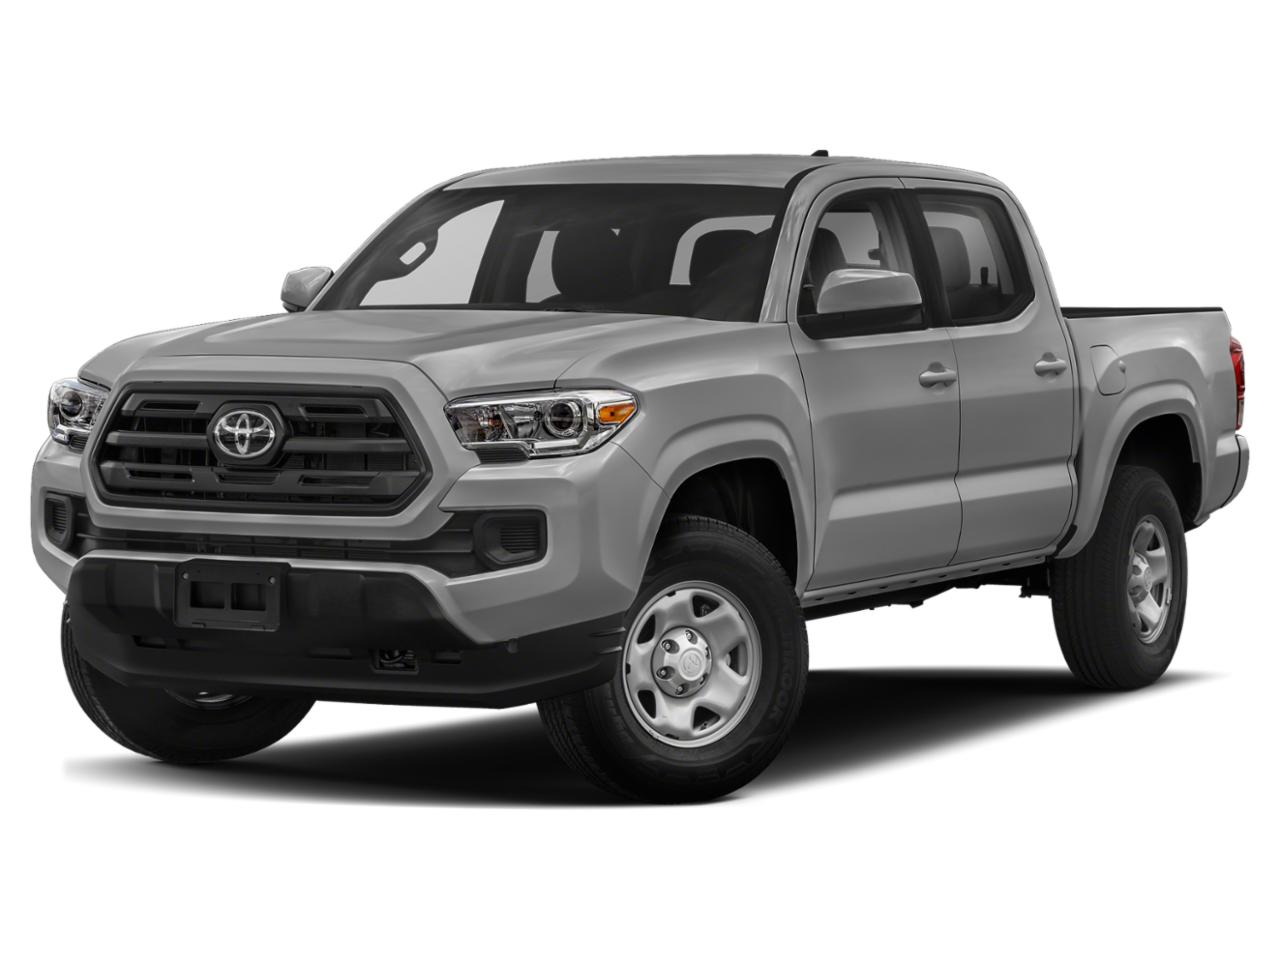 2019 Toyota Tacoma 4WD Vehicle Photo in San Antonio, TX 78257